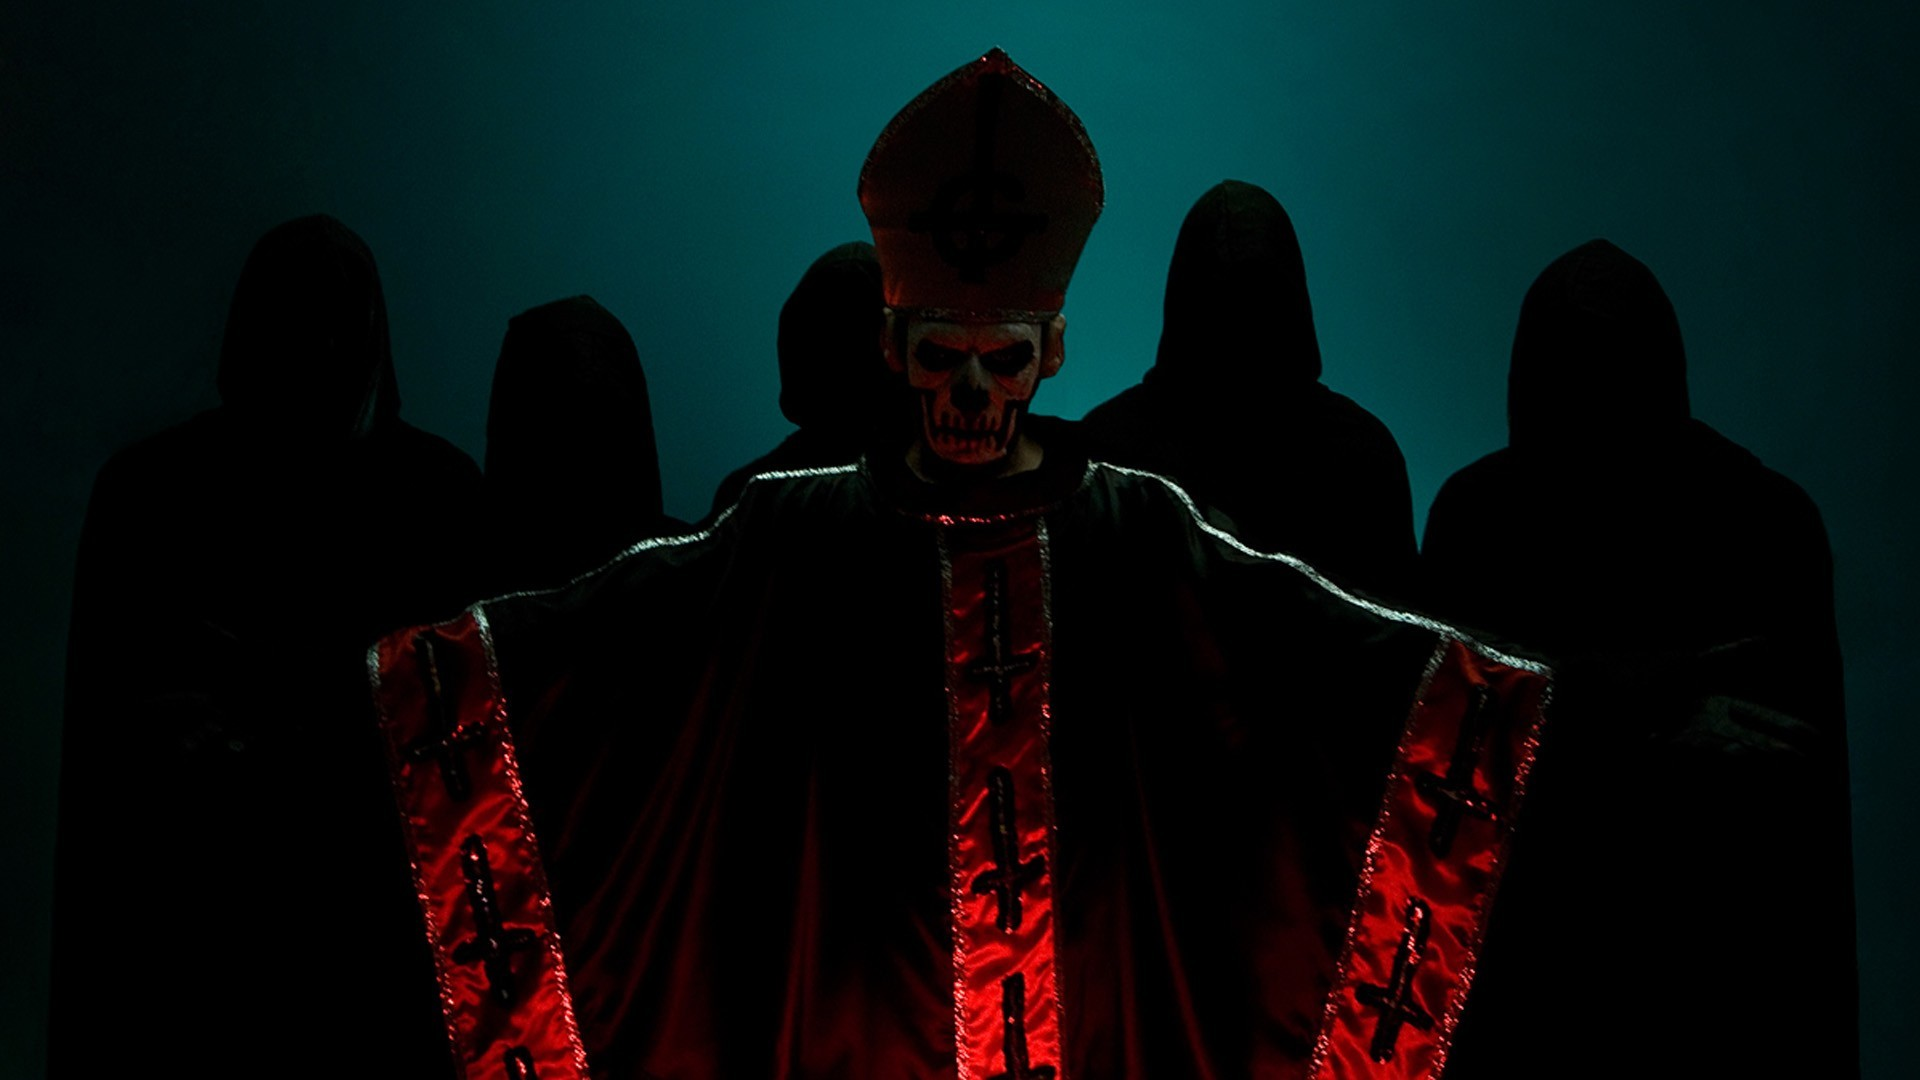 1920x1080 ... band ghost pope papa wallpapers ...